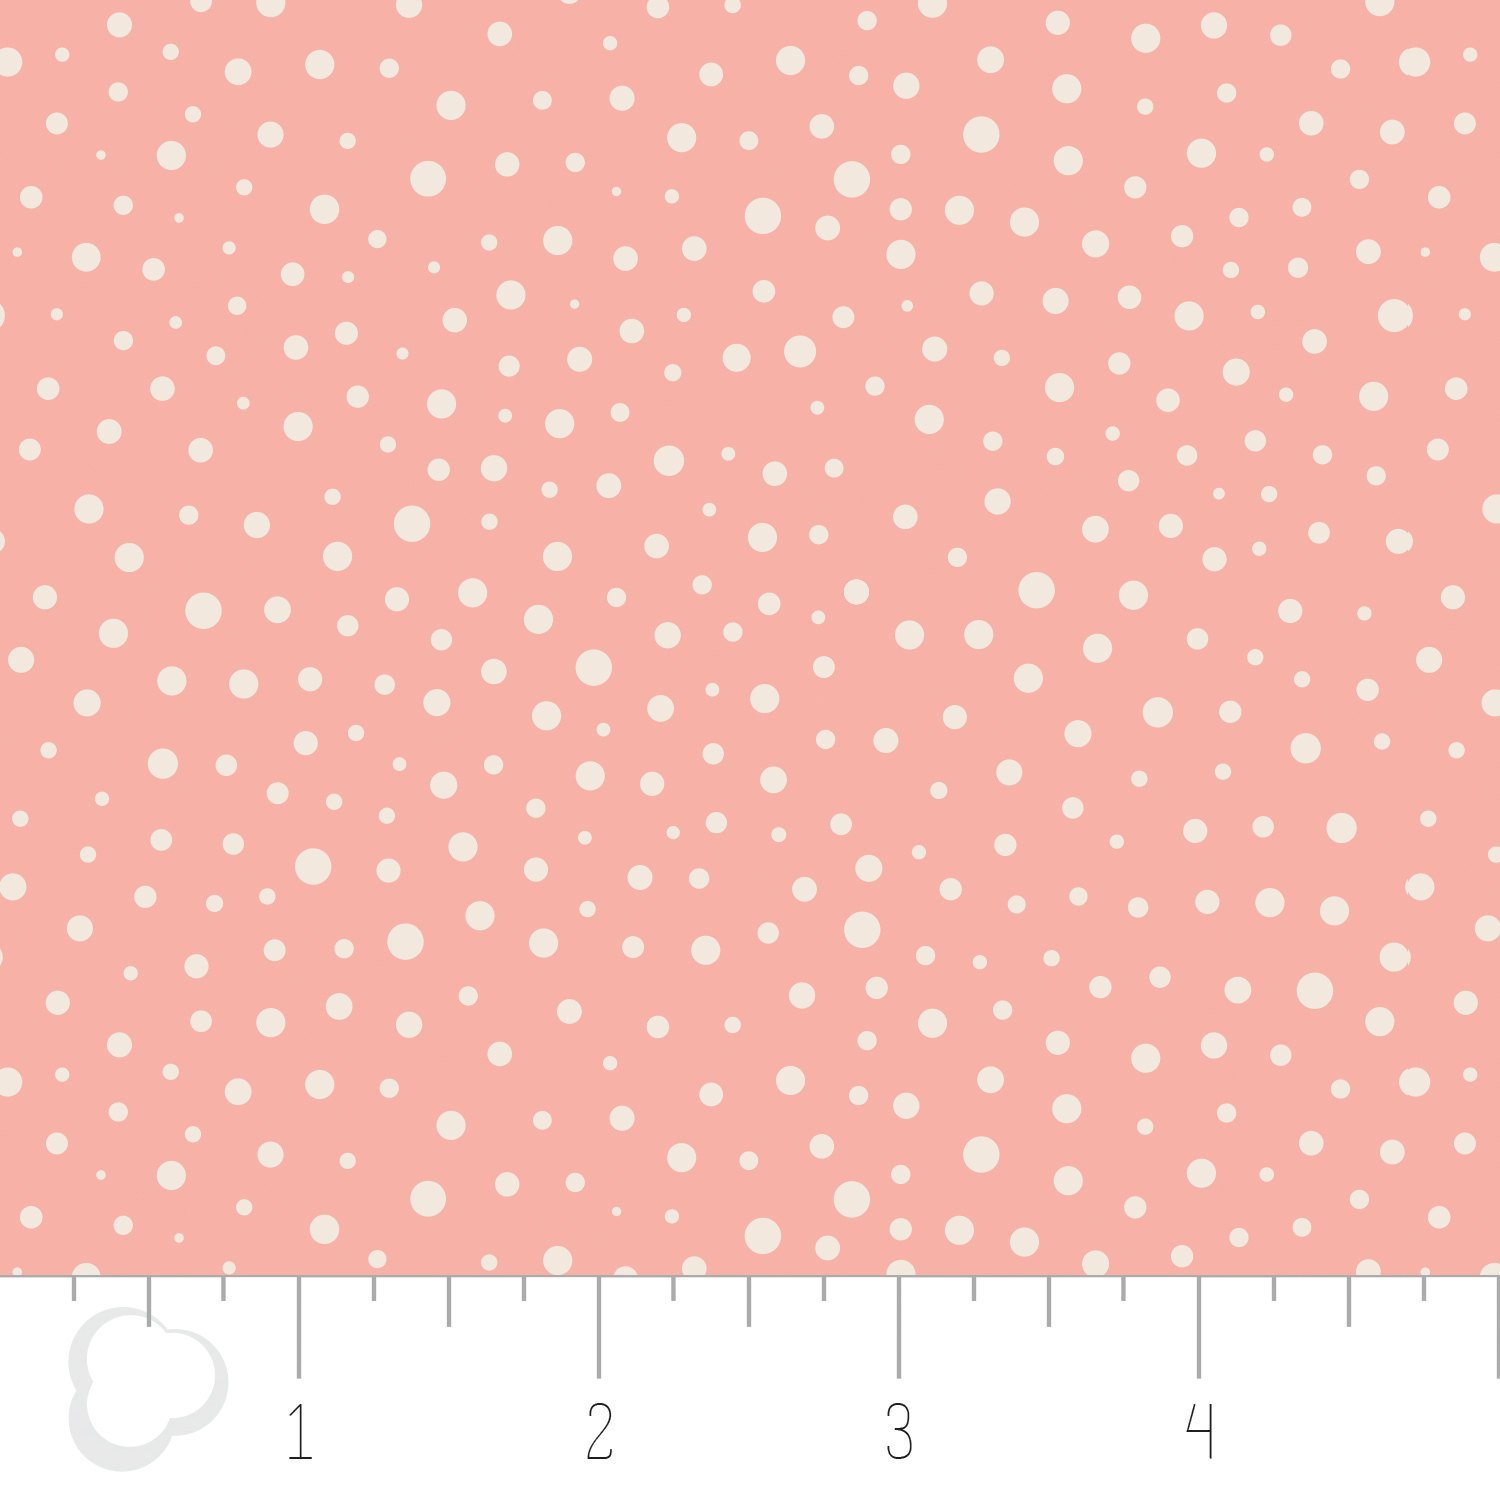 Q - Camelot Fabric - Mixology - Peach with Dots